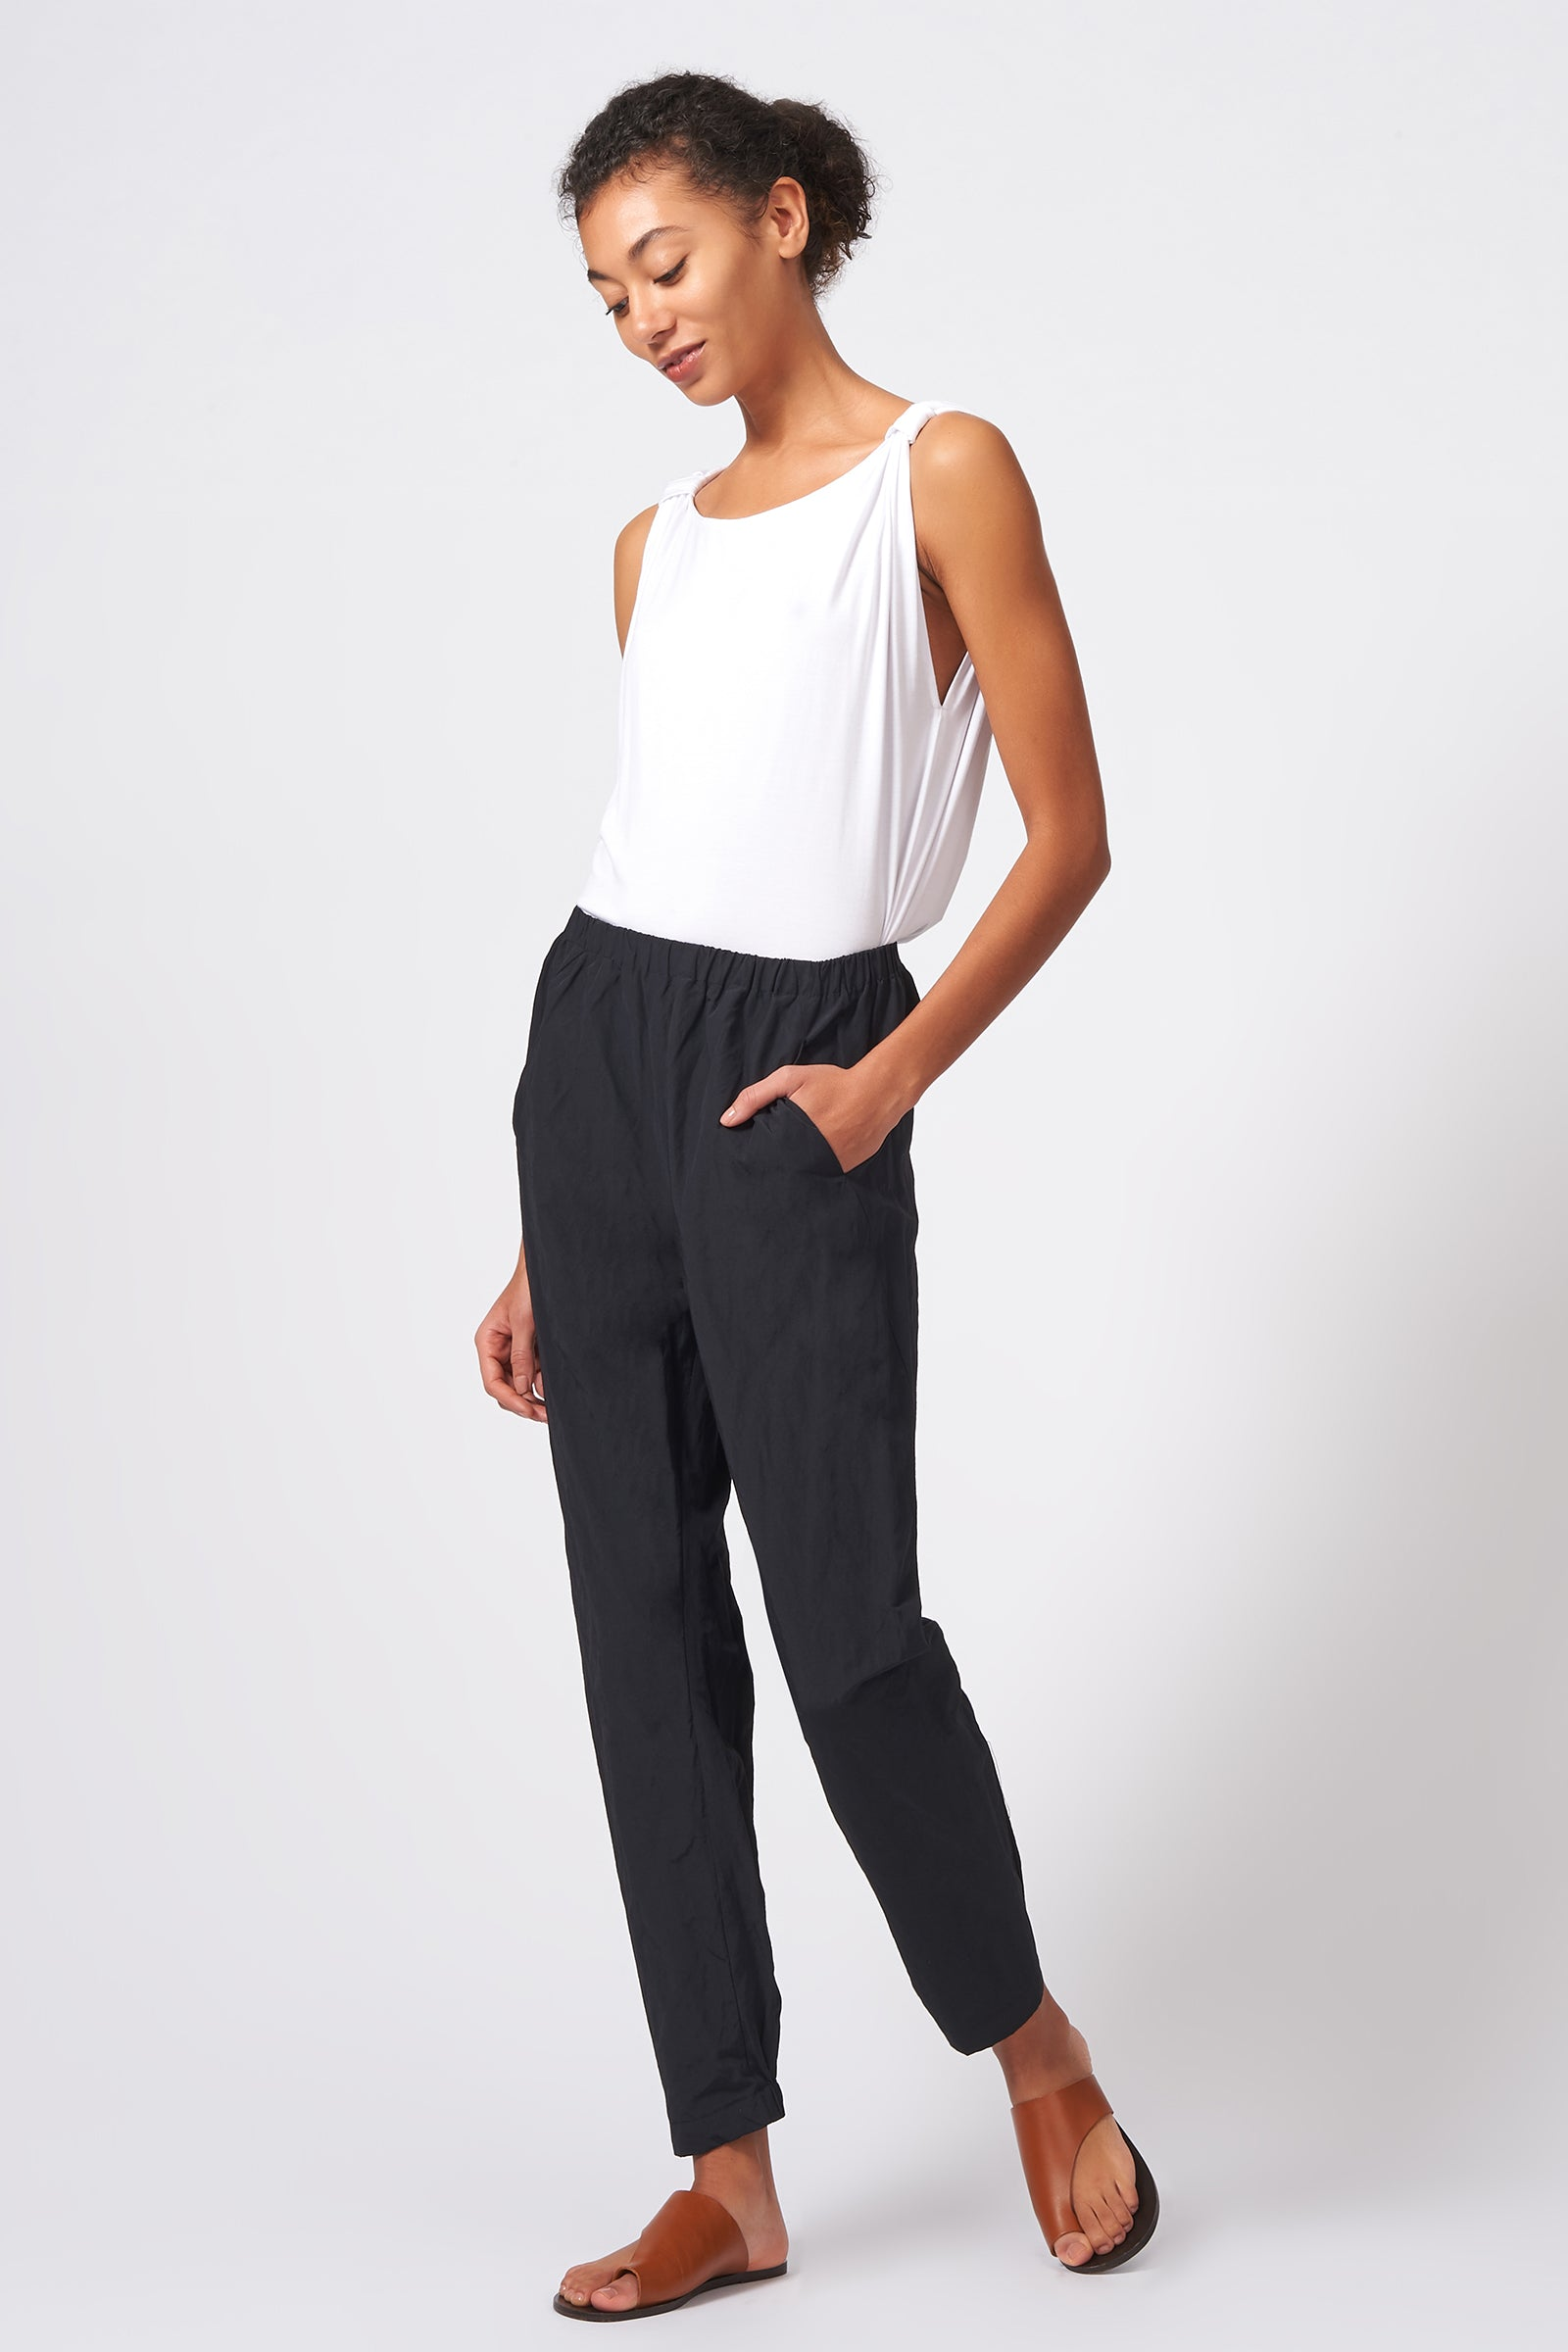 Kal Rieman Angle Seam Jogger in Black Cotton Nylon on Model Front Side Full View